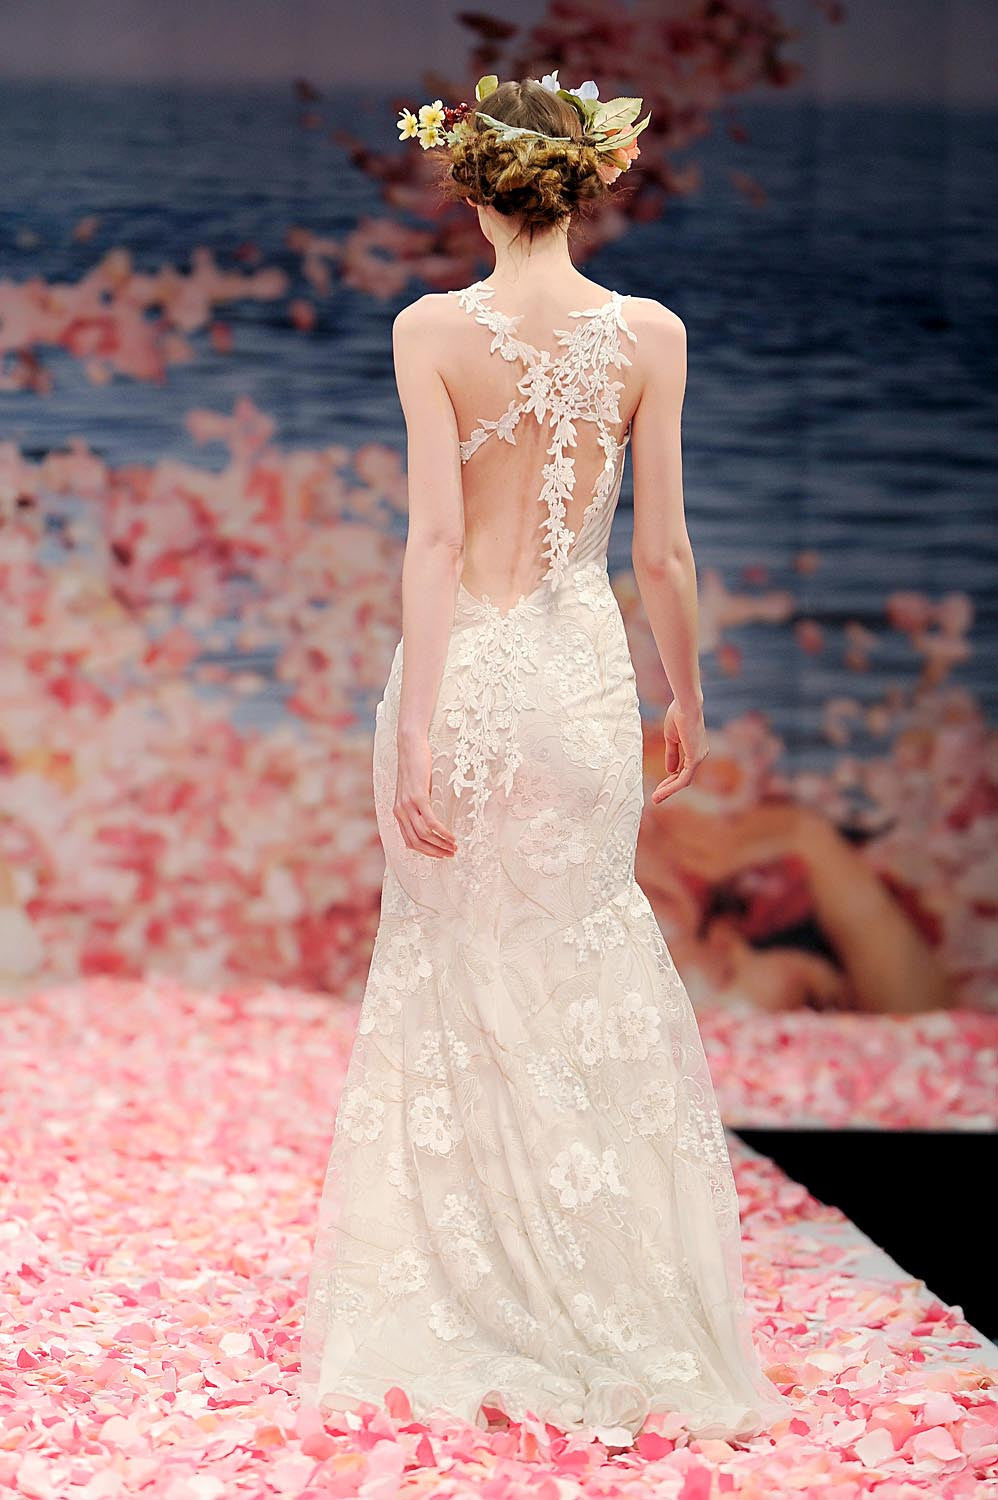 Claire Pettibone 'Devotion' - Claire Pettibone - Nearly Newlywed Bridal Boutique - 1